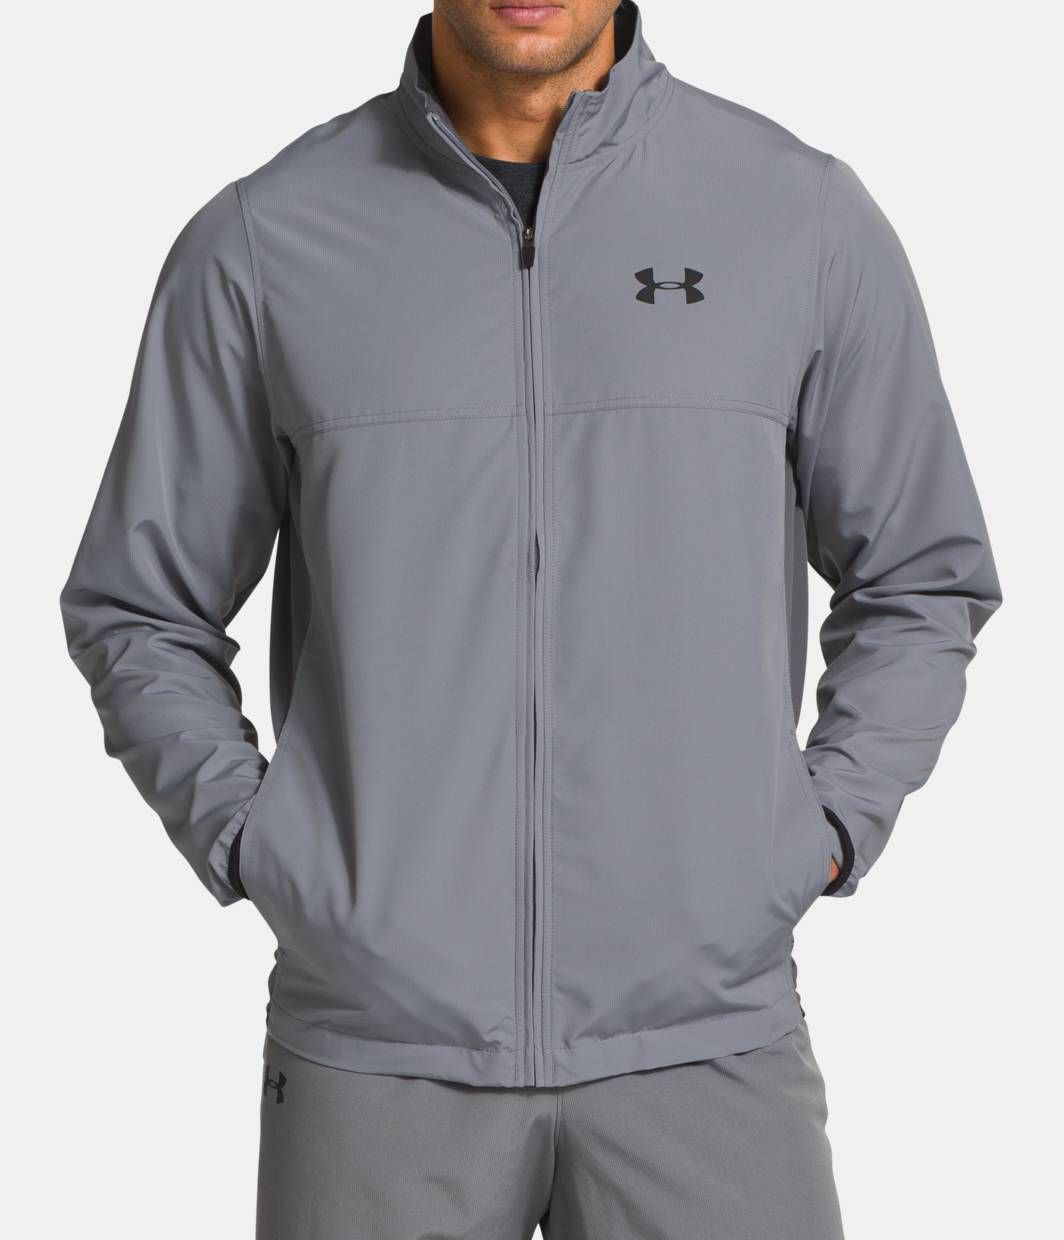 b3defb0f4b4 (5) Men s UA Vital Warm-Up Jacket